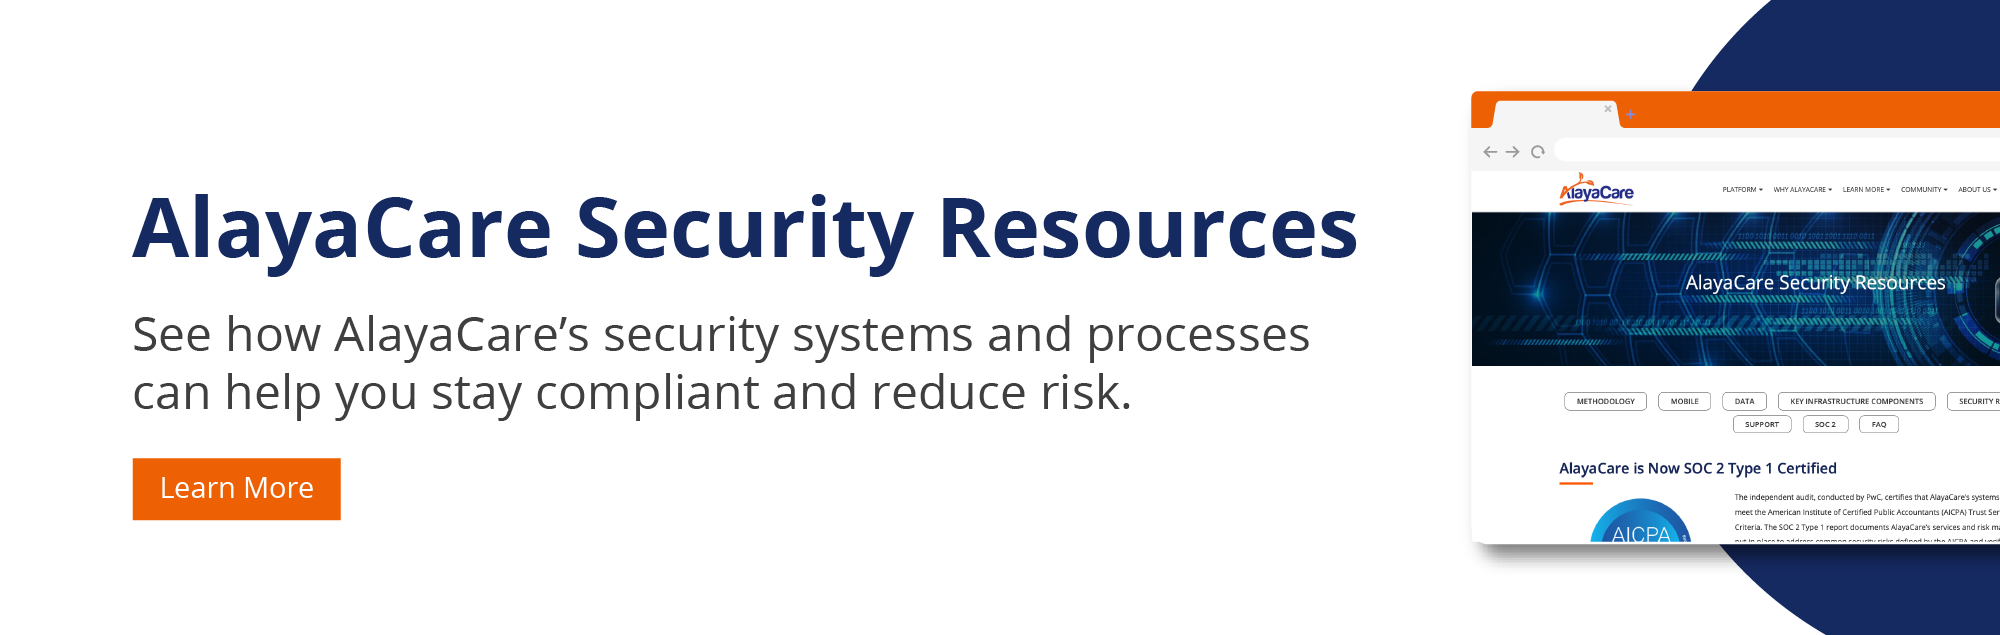 AlayaCare Security Resources CTA